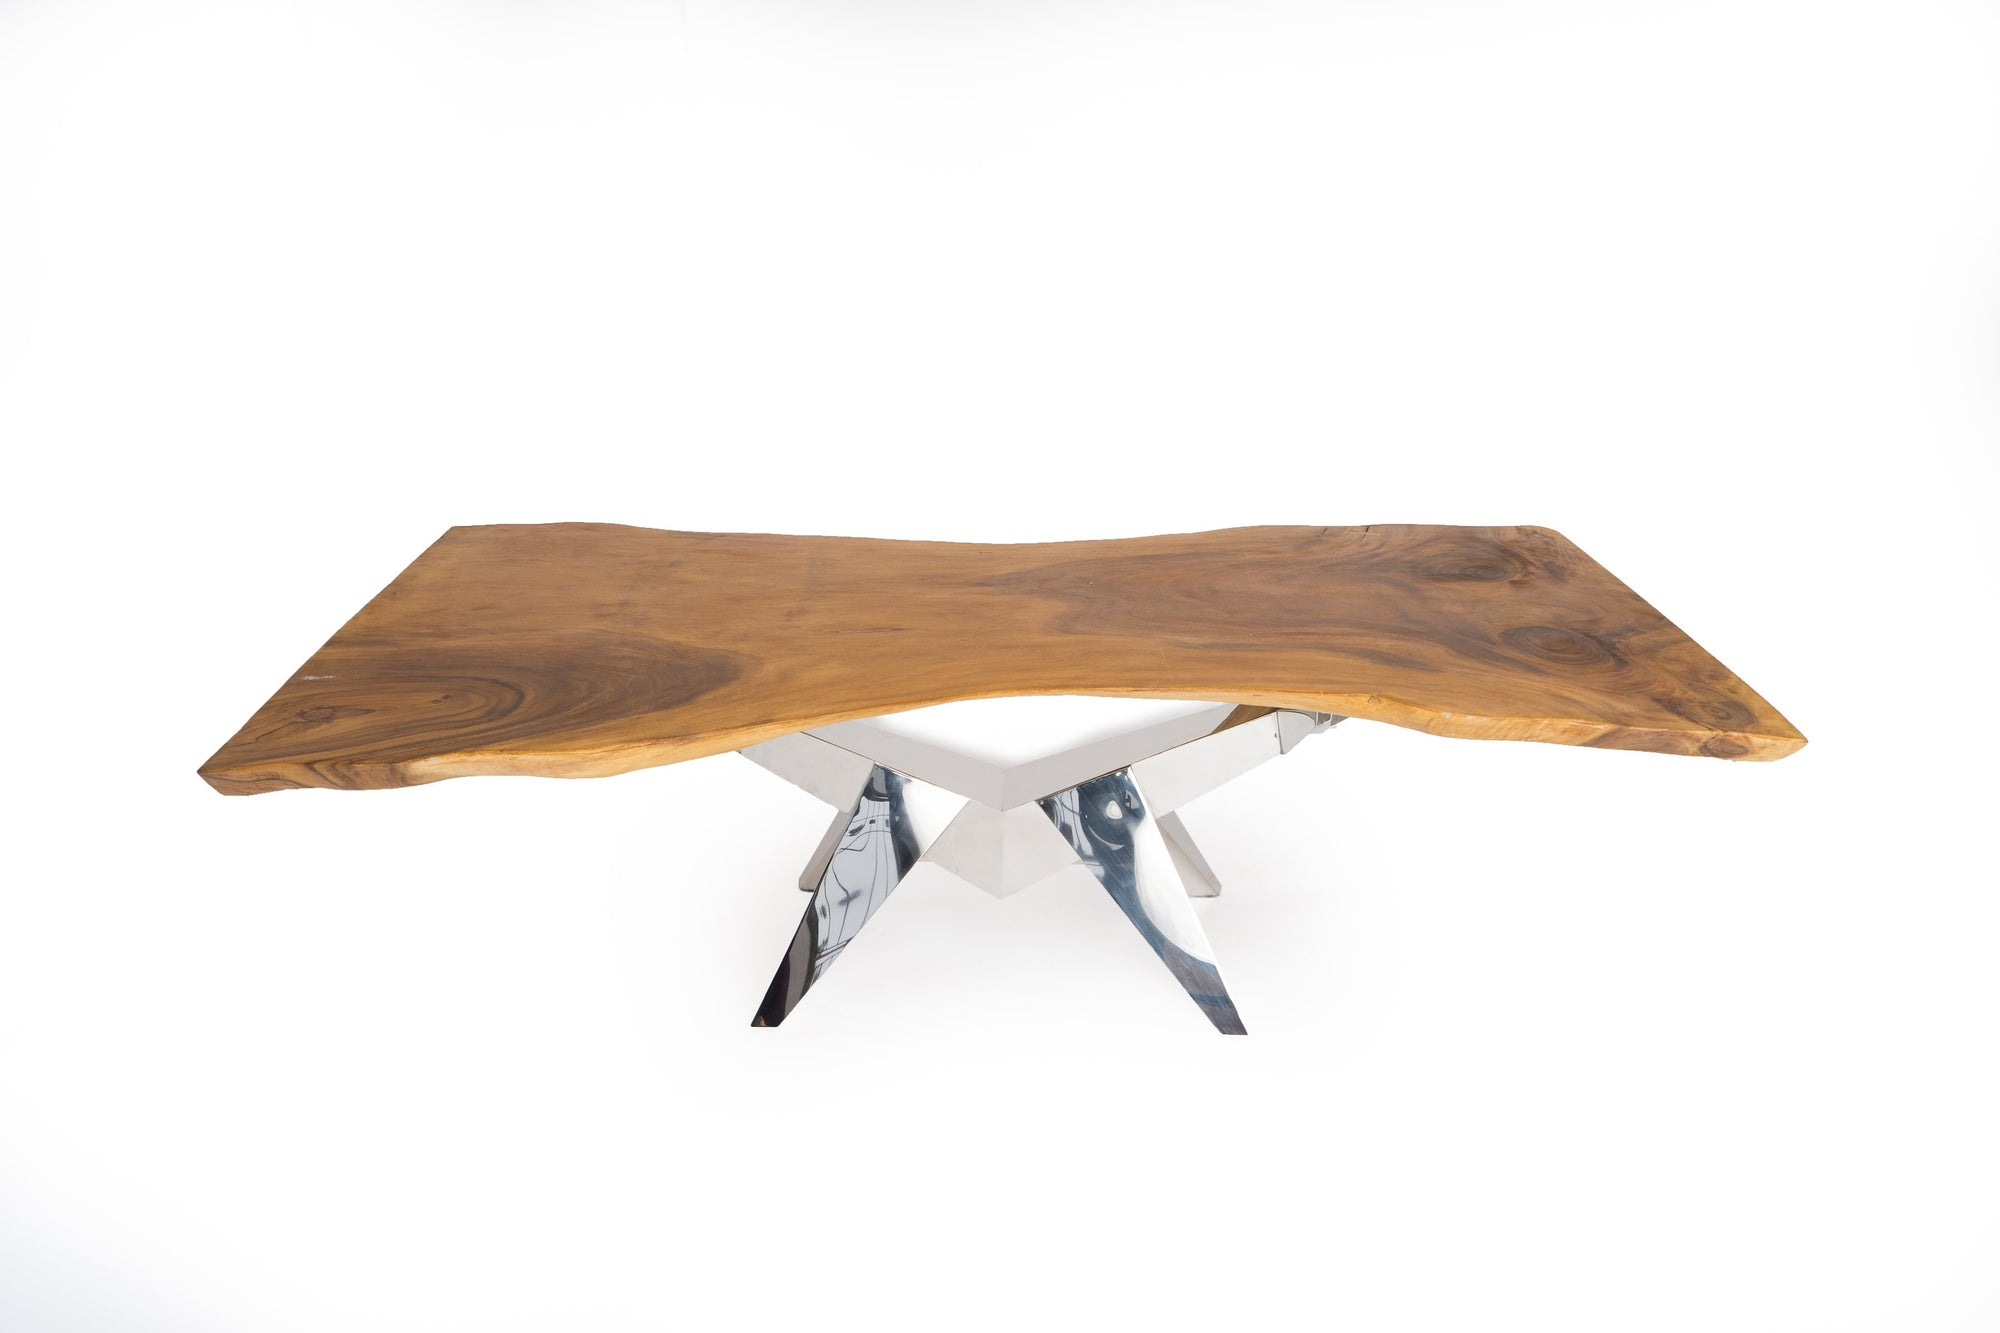 Norquay Live Edge Dining Table | 7.8ft | SKU 1602-3D